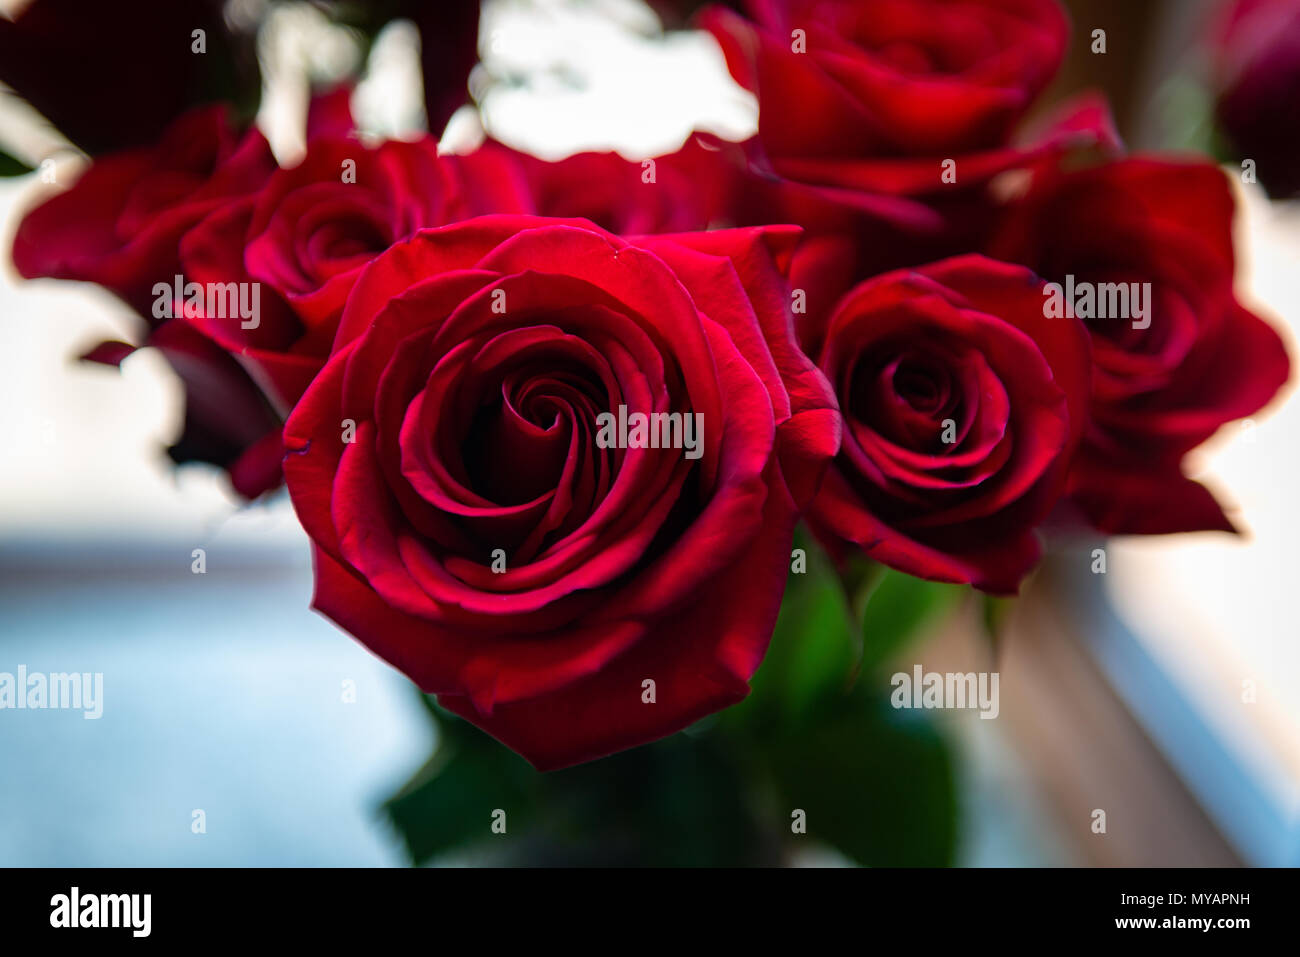 Rose flowers valentines red marriage anniversary birthday stock red roses amazing light anniversary roses in bay window closeup valentines wedding izmirmasajfo